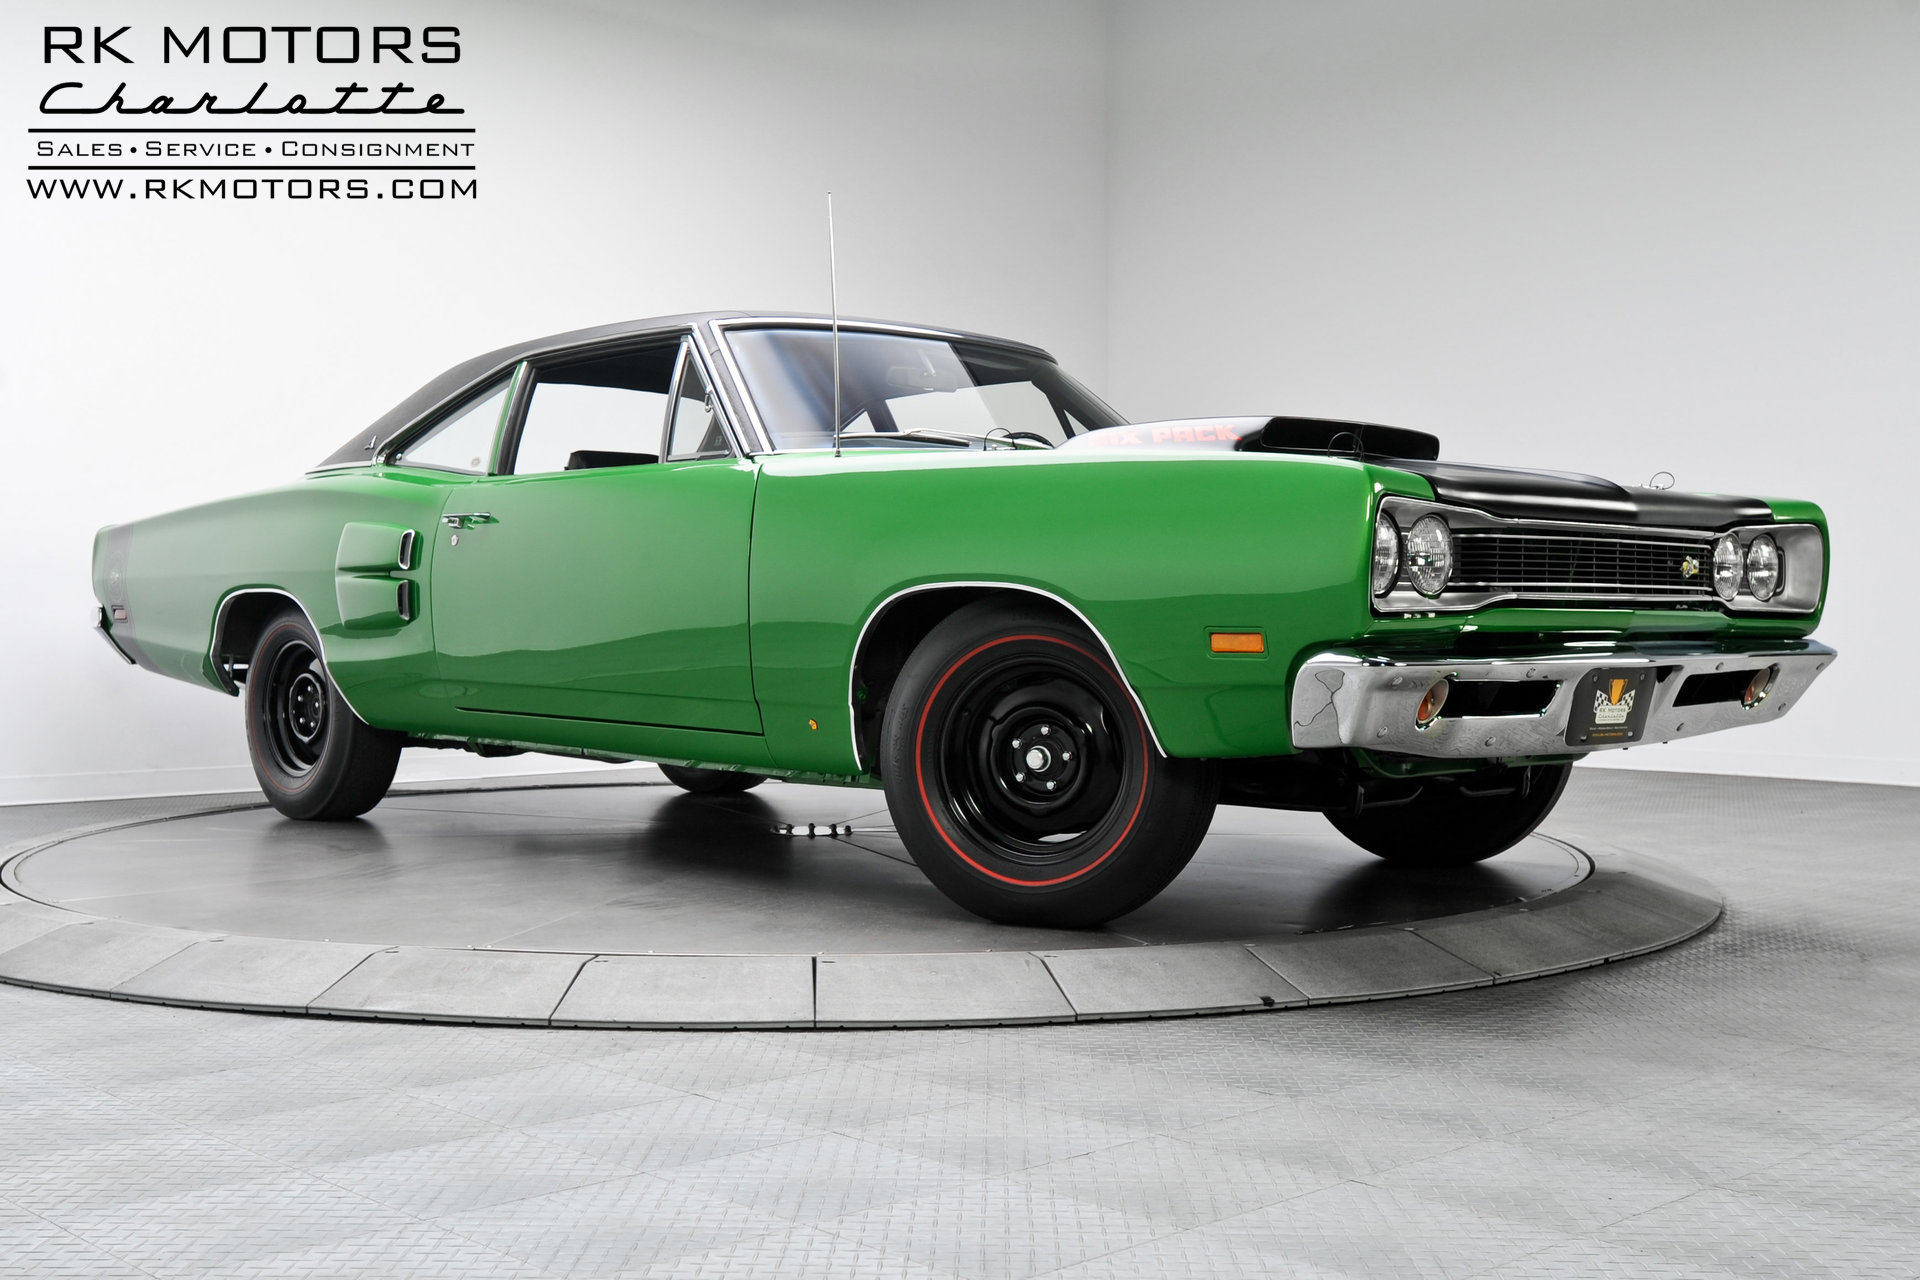 134555 1969 1 2 Dodge Coronet Rk Motors Classic And Performance A12 Super Bee For Sale